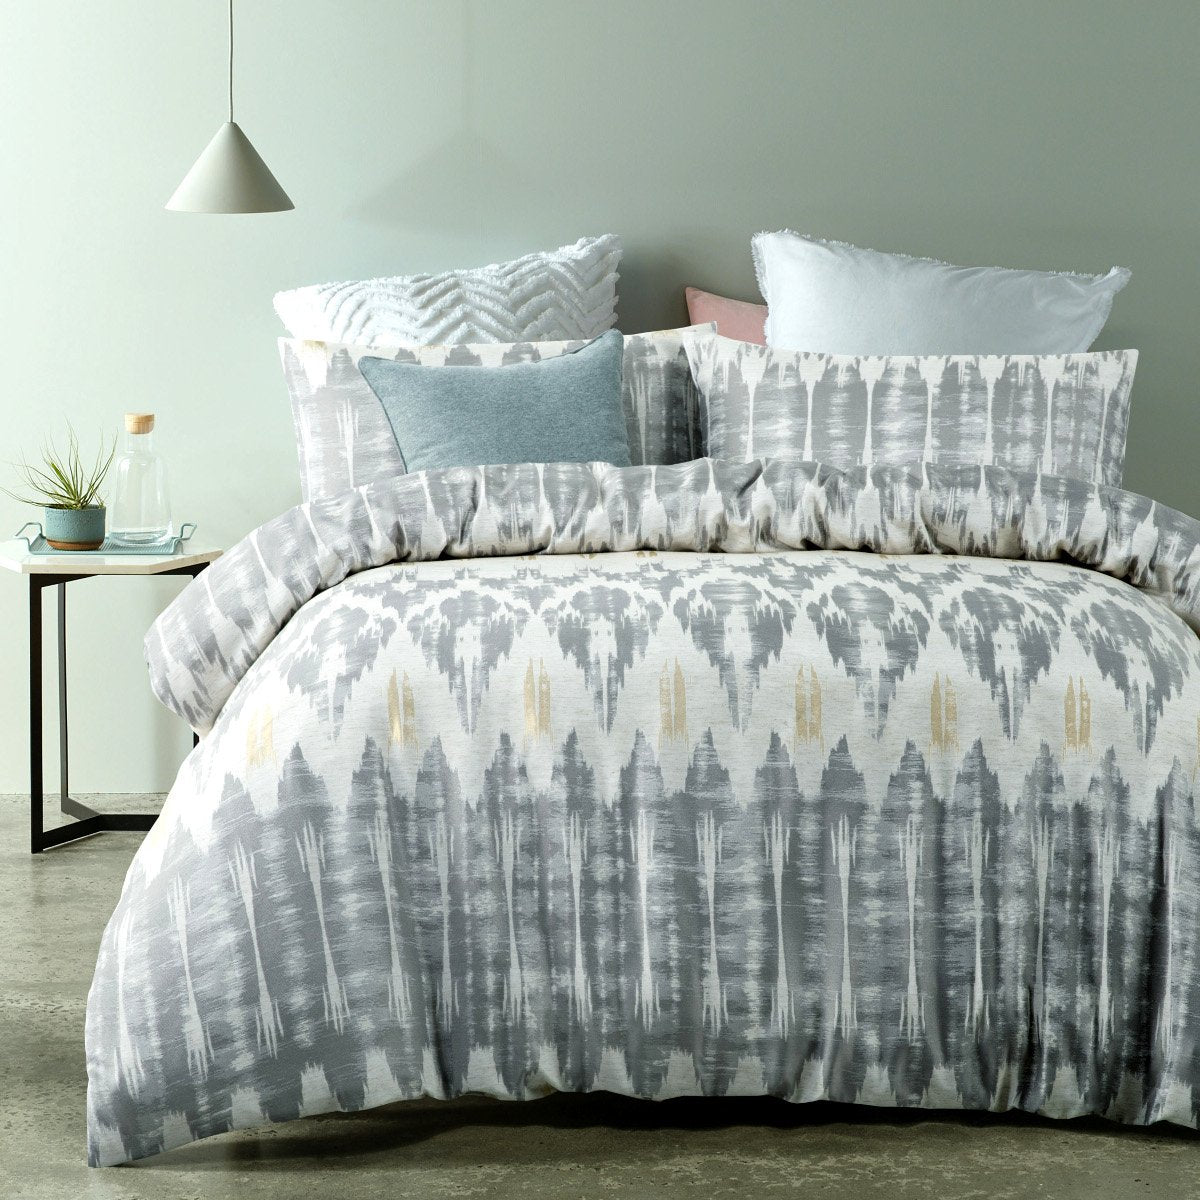 300TC beige / grey duvet cover set. Polyester jacquard quilt cover set.